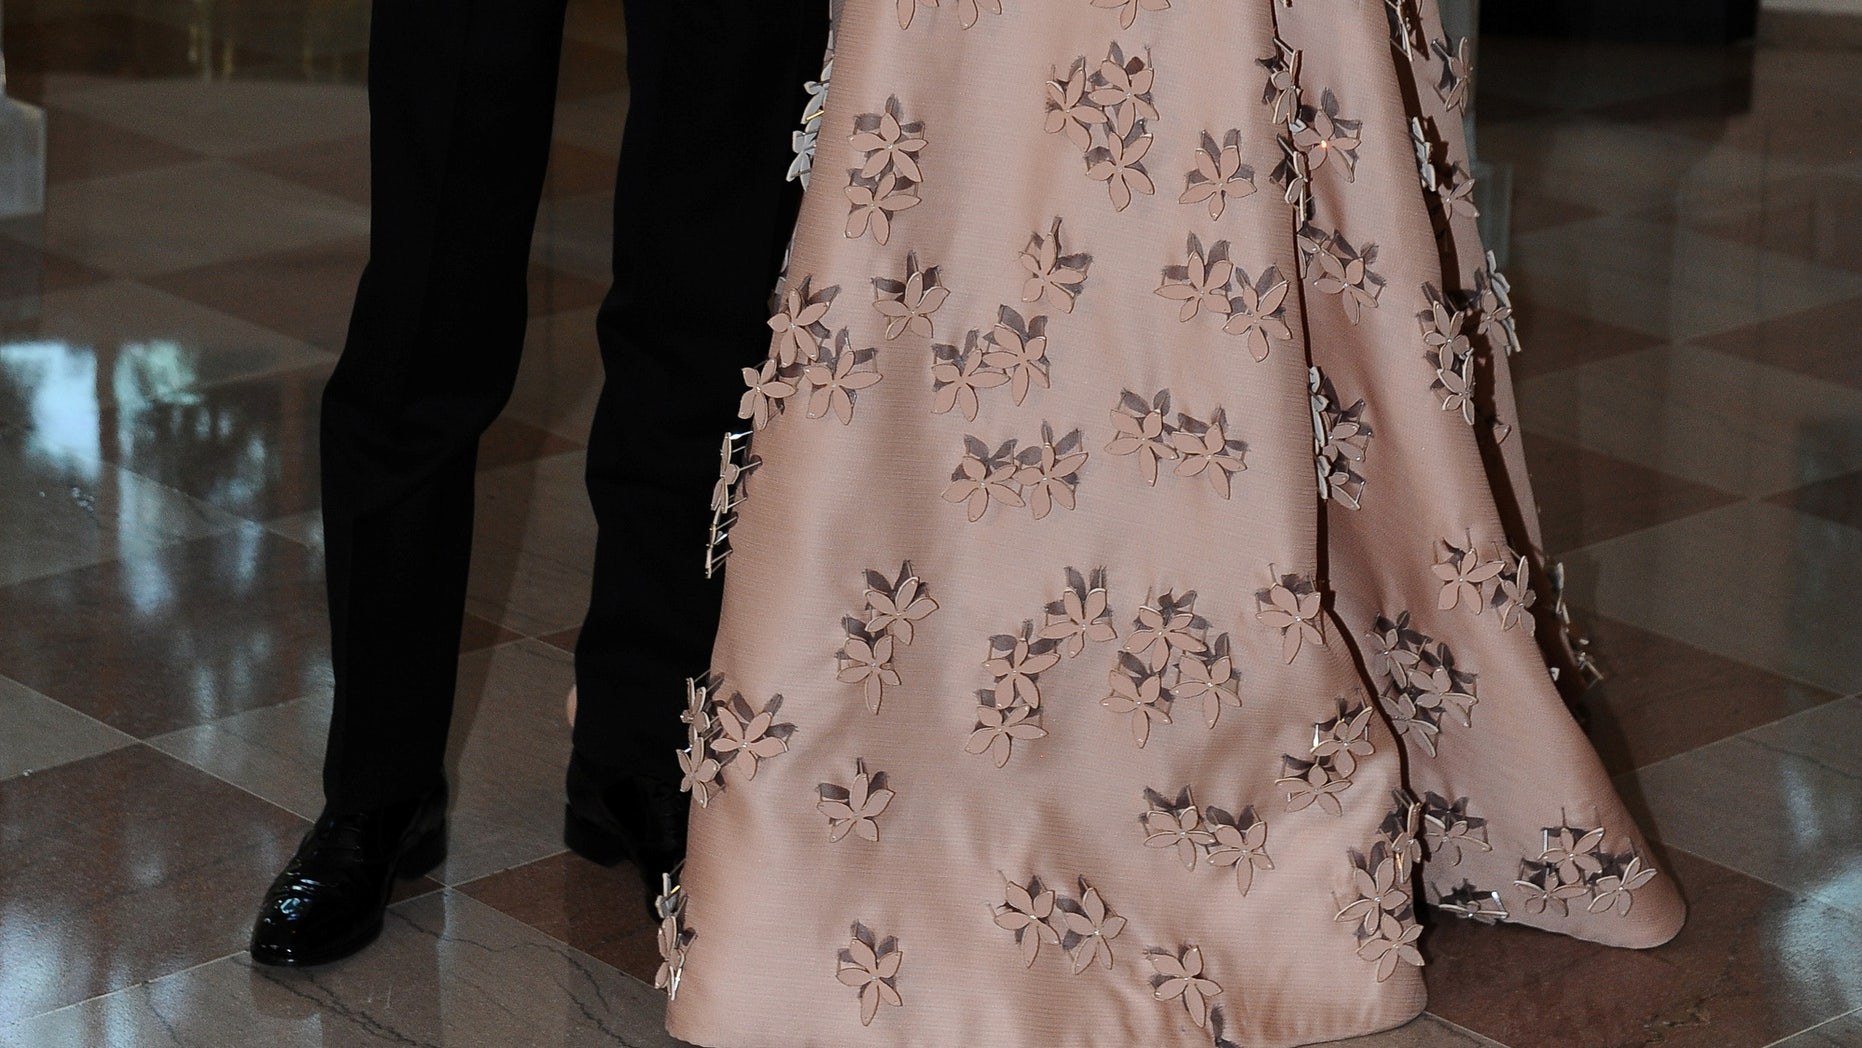 Evan Spiegel, Chief Executive Officer, Snapchat and model Miranda Kerr arrive for the state dinner in honor of the Nordic Summit at the White House in Washington, May 13, 2016. REUTERS/Mary F. Calvert - RTSE8TG